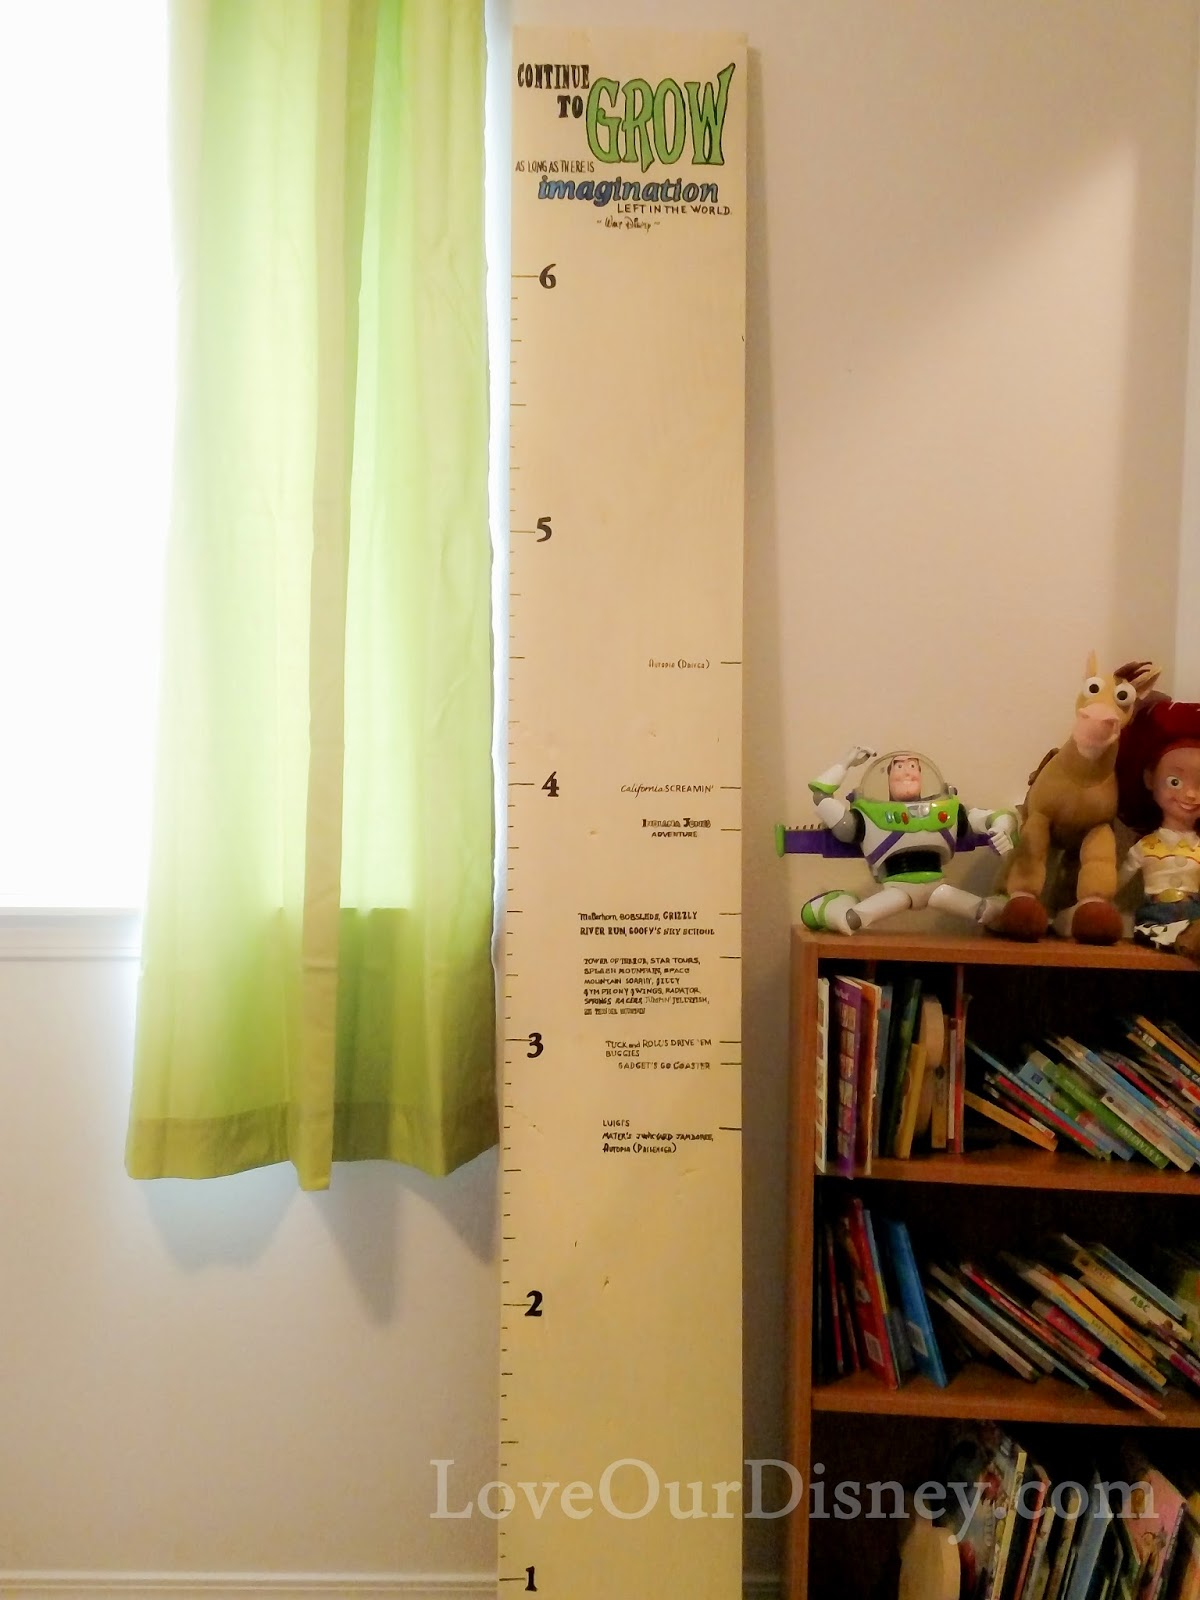 This is a Disney lover growth chart! Ride height requirements marked on it. LoveOurDisney.com